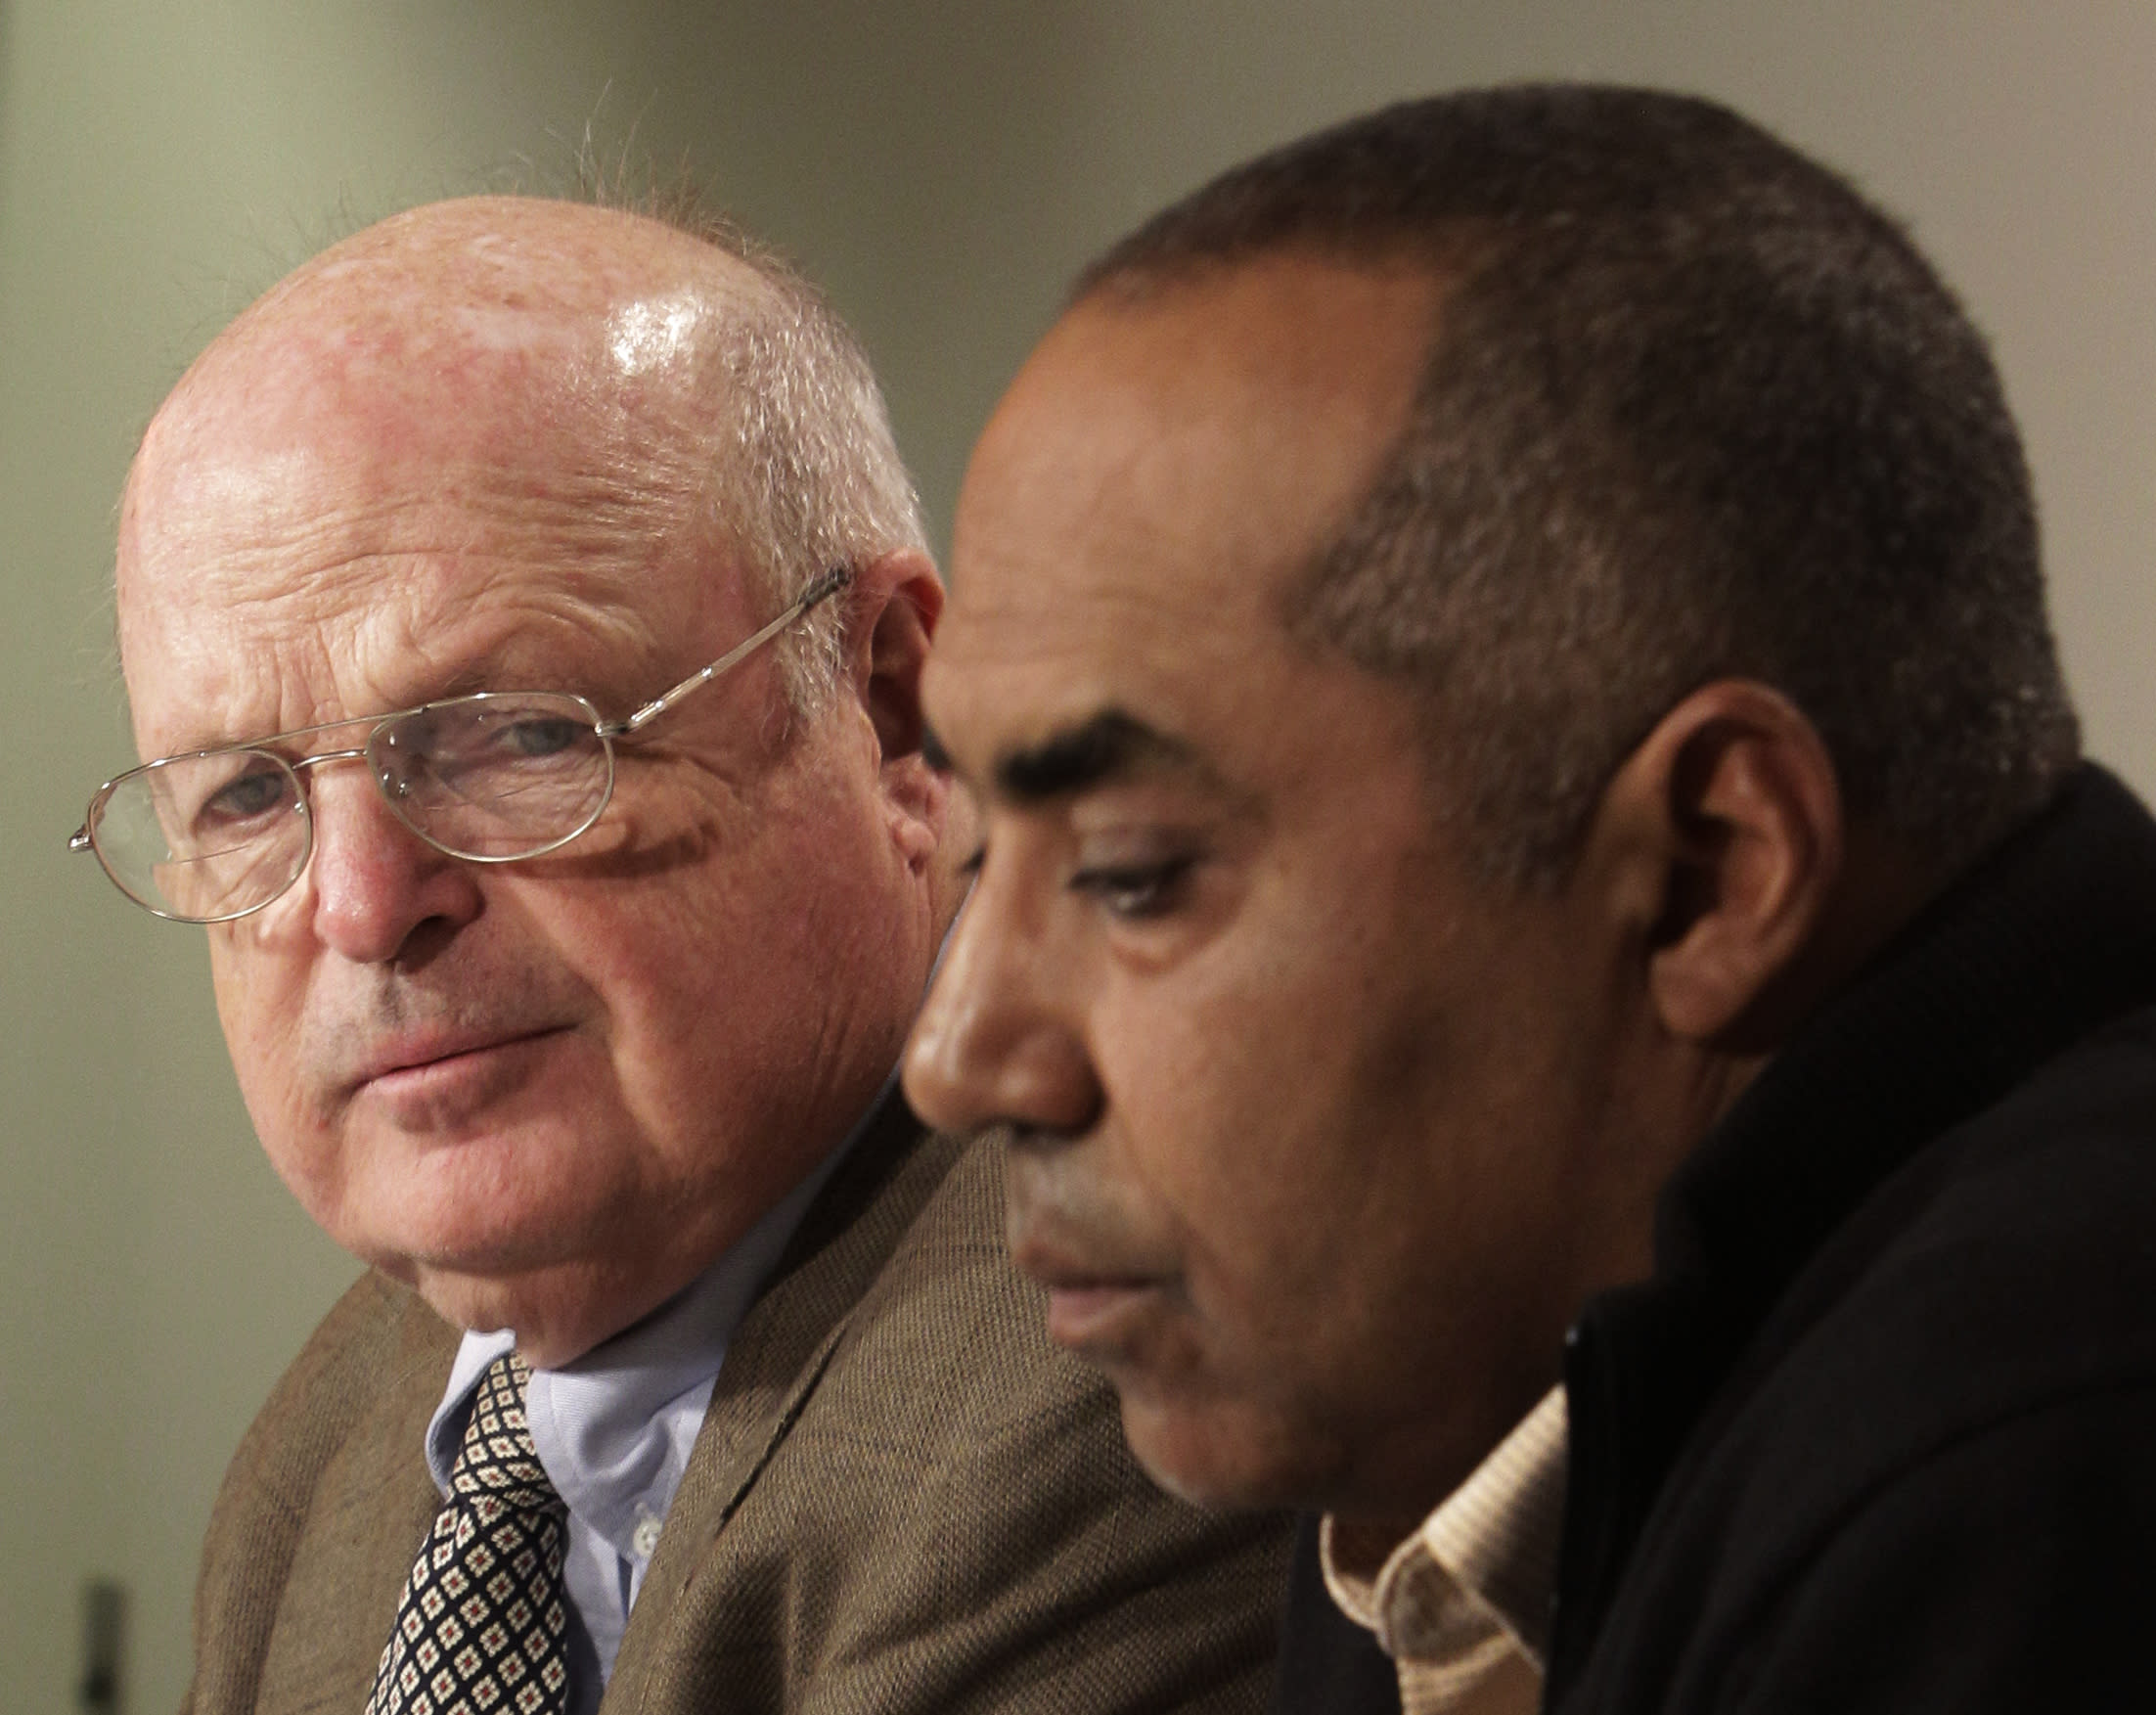 Bengals owner finally reveals the reason he brought Marvin Lewis back